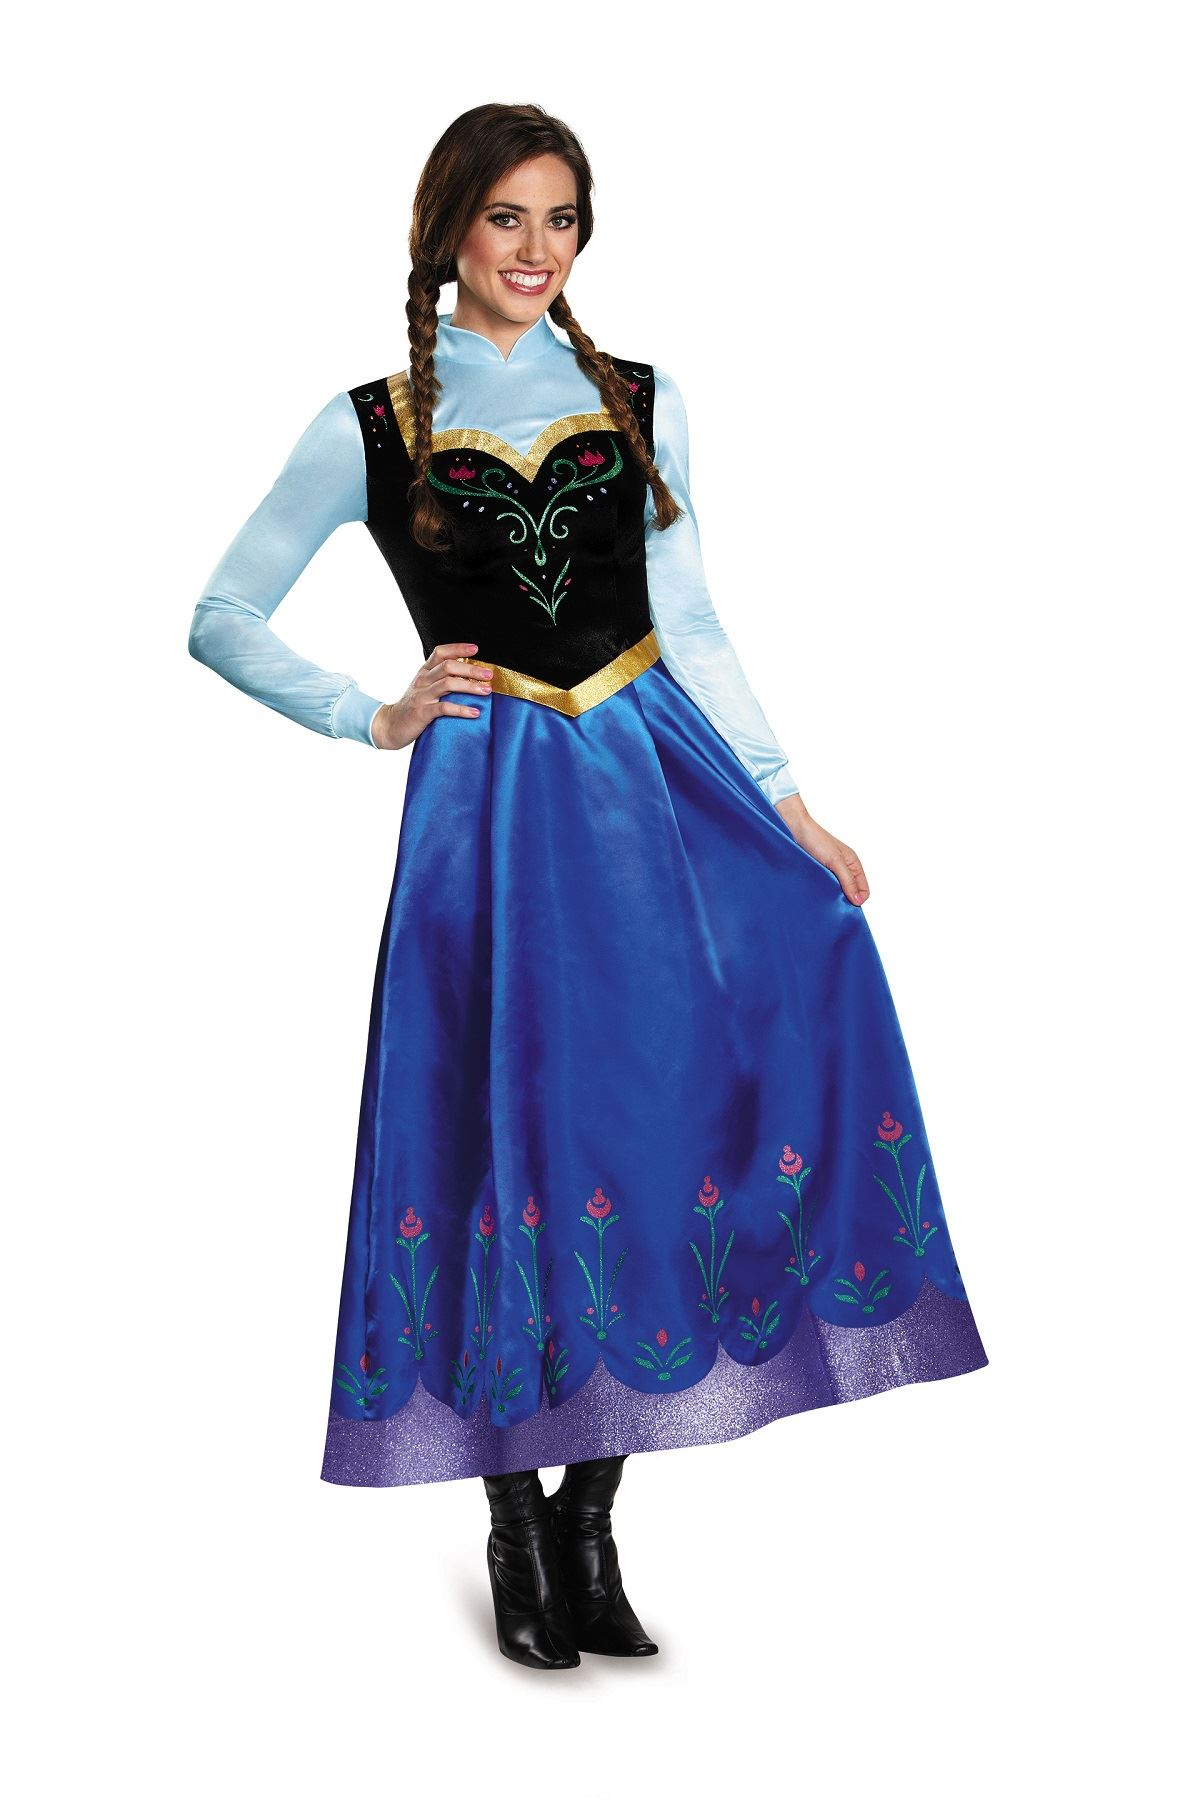 Adult Anna Travelling Disney Princess Woman Costume | $141 ...